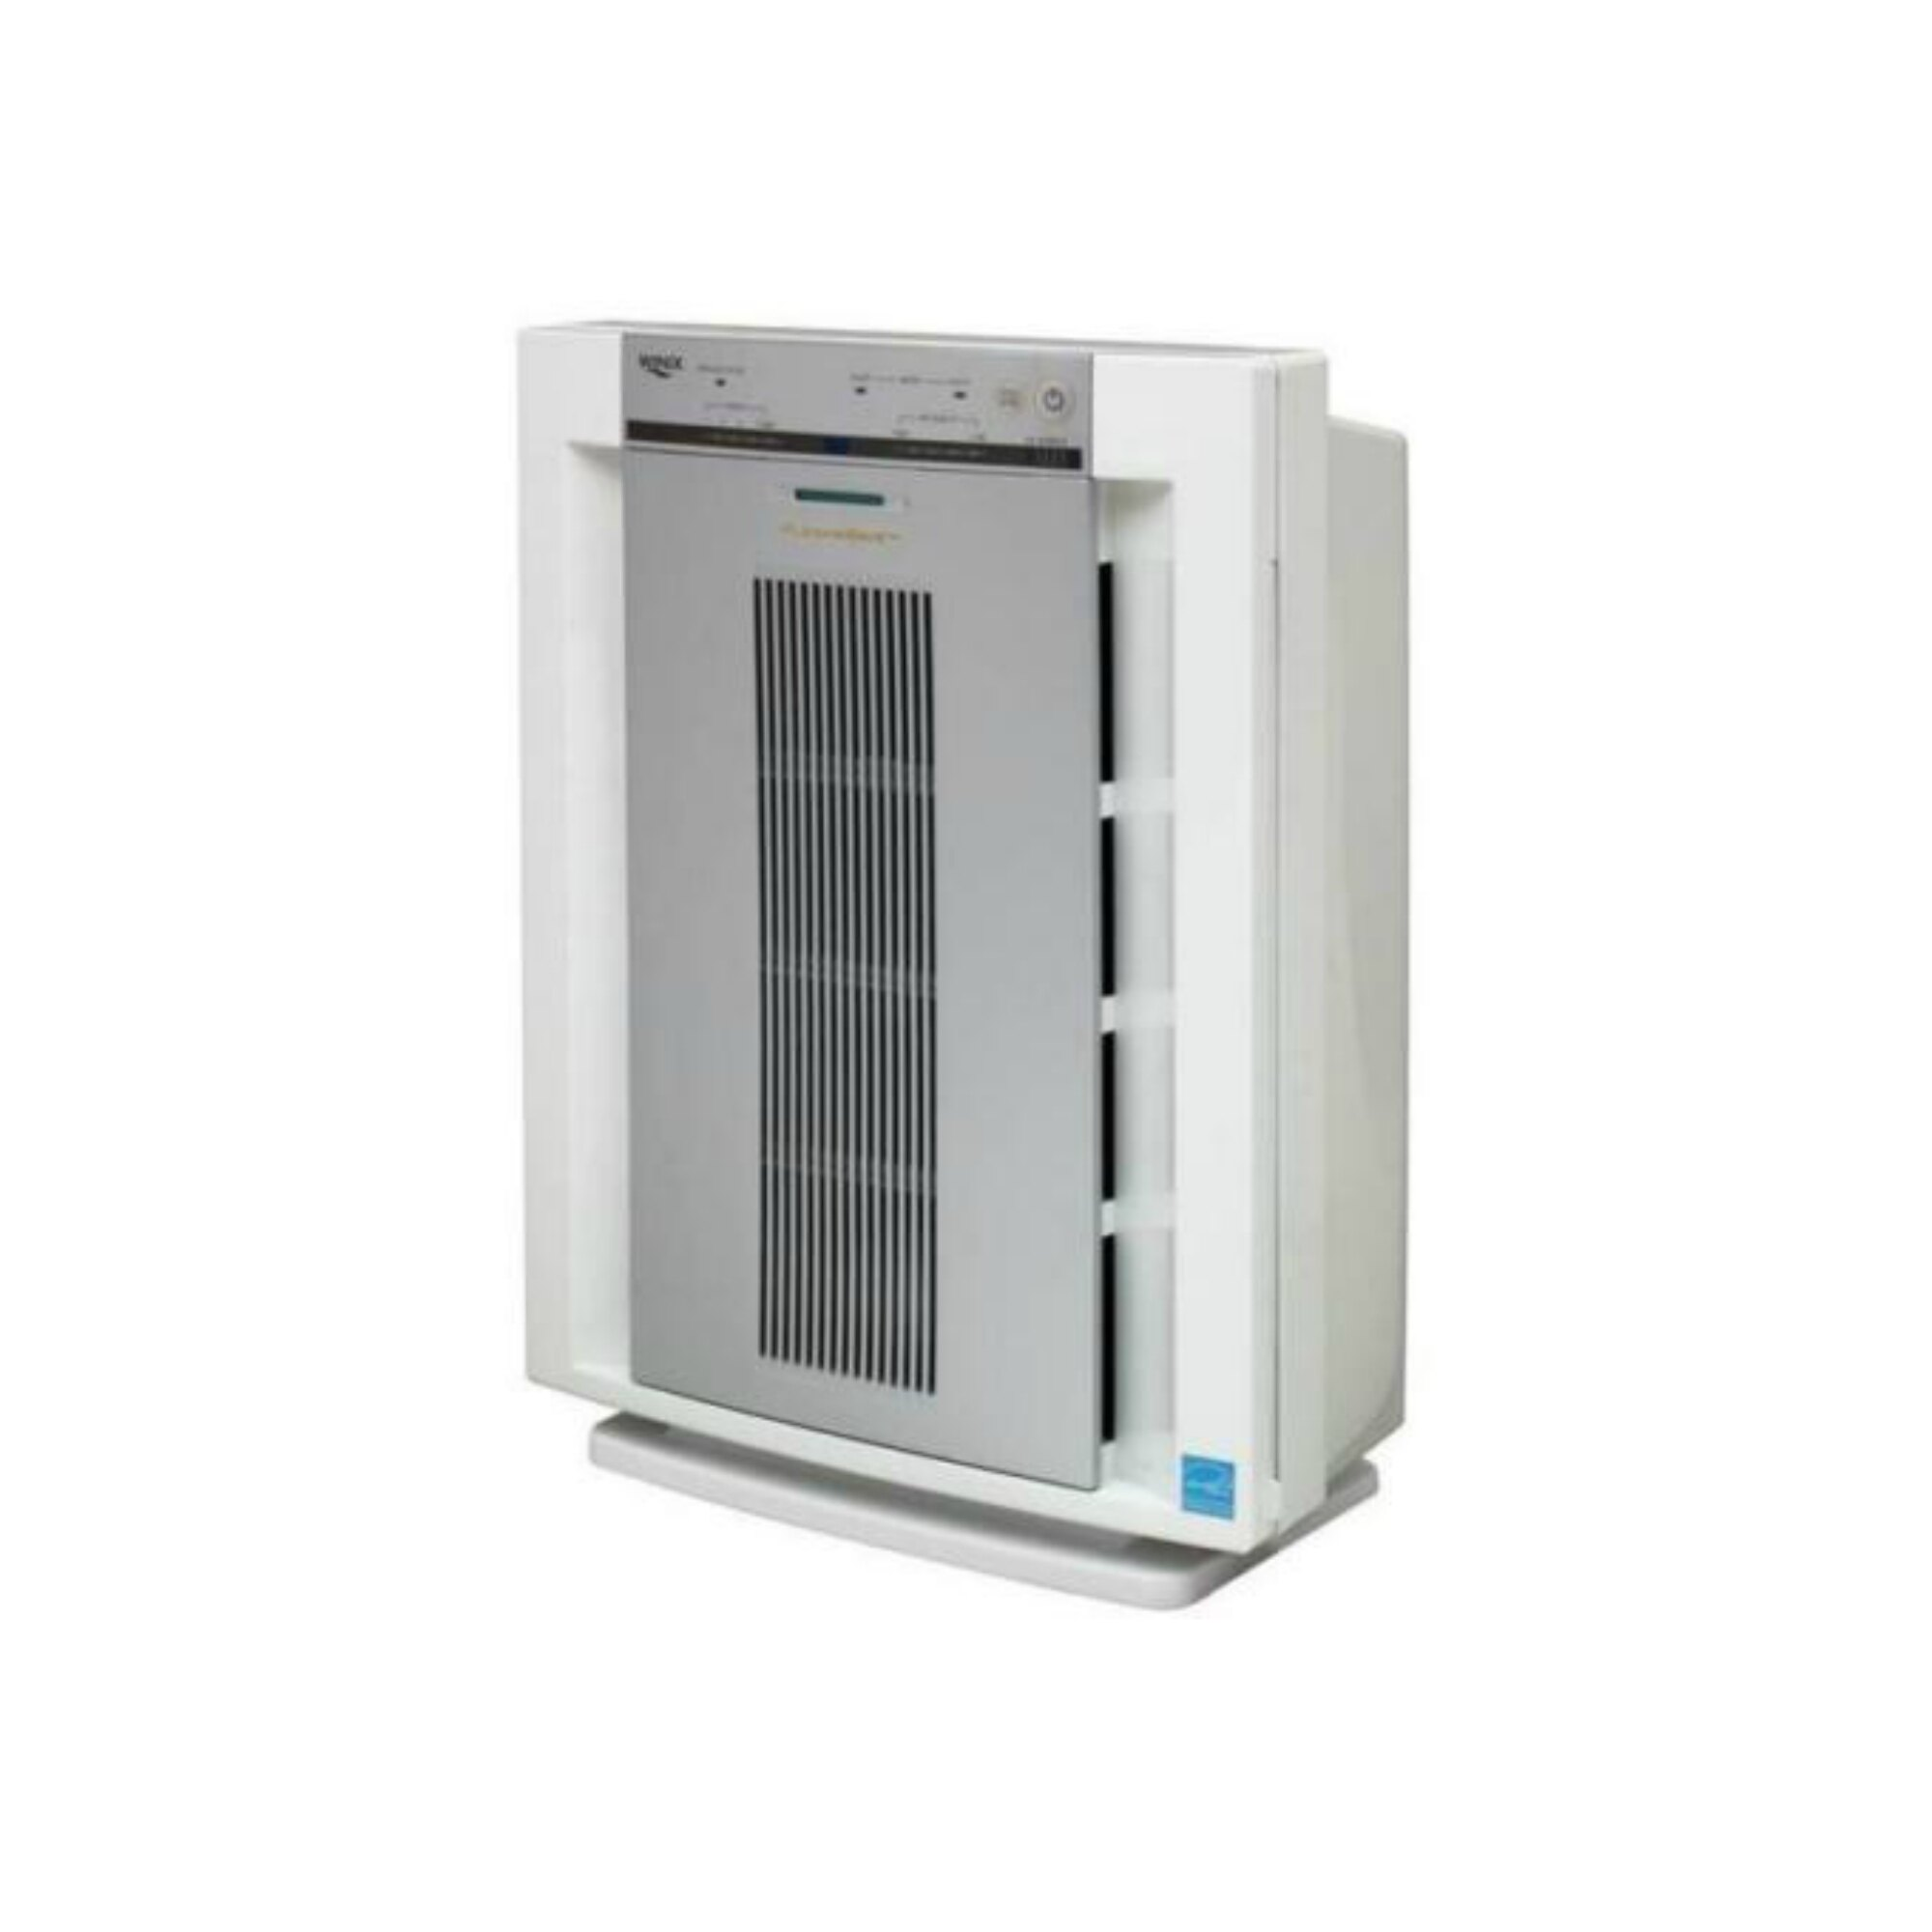 Winix WAC6300 4-Stage True HEPA Air Cleaner with PlasmaWave Technology Factory Refurbished 1